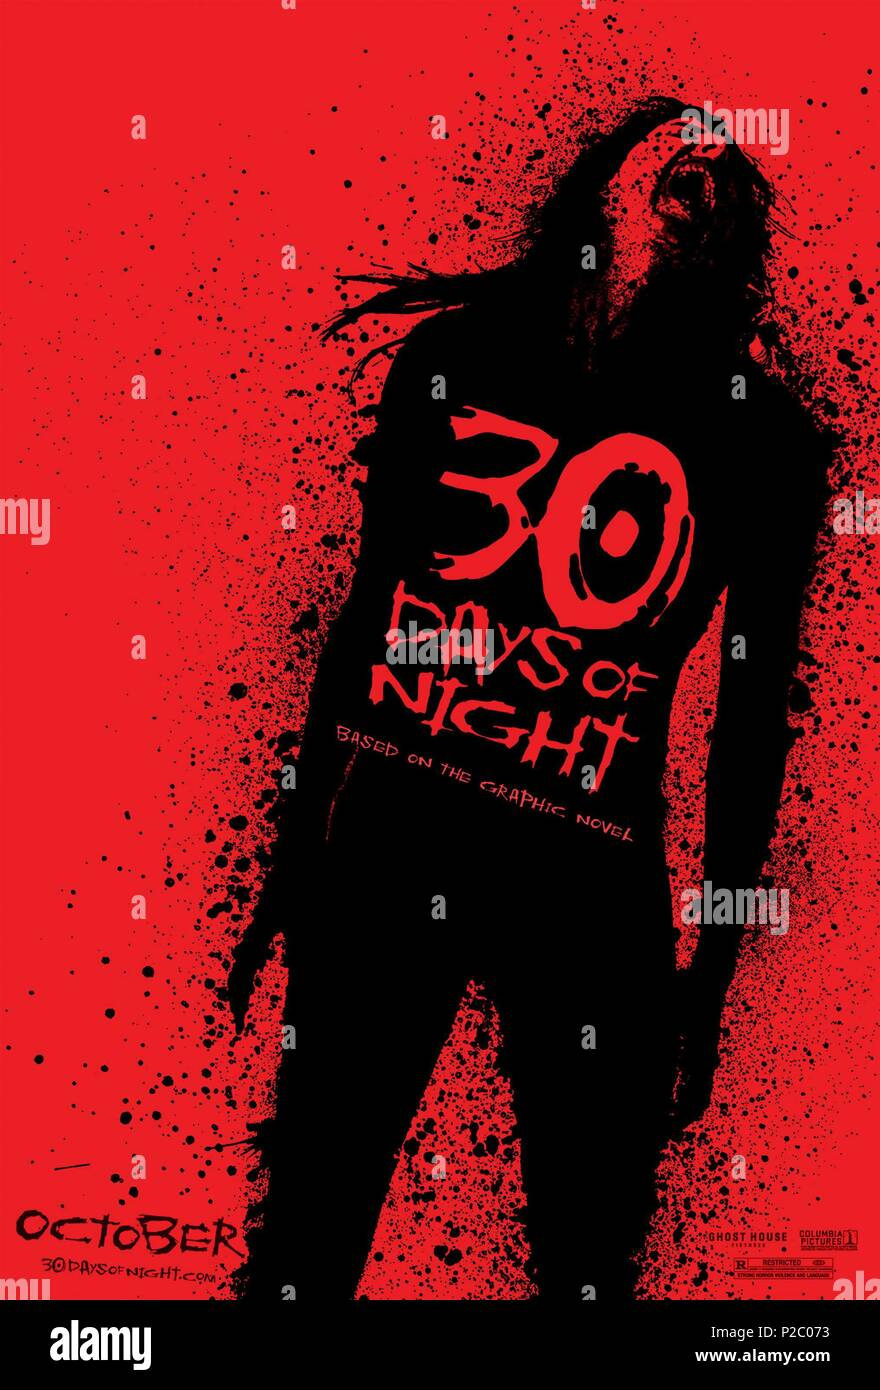 30 Days Of Night High Resolution Stock Photography And Images Alamy